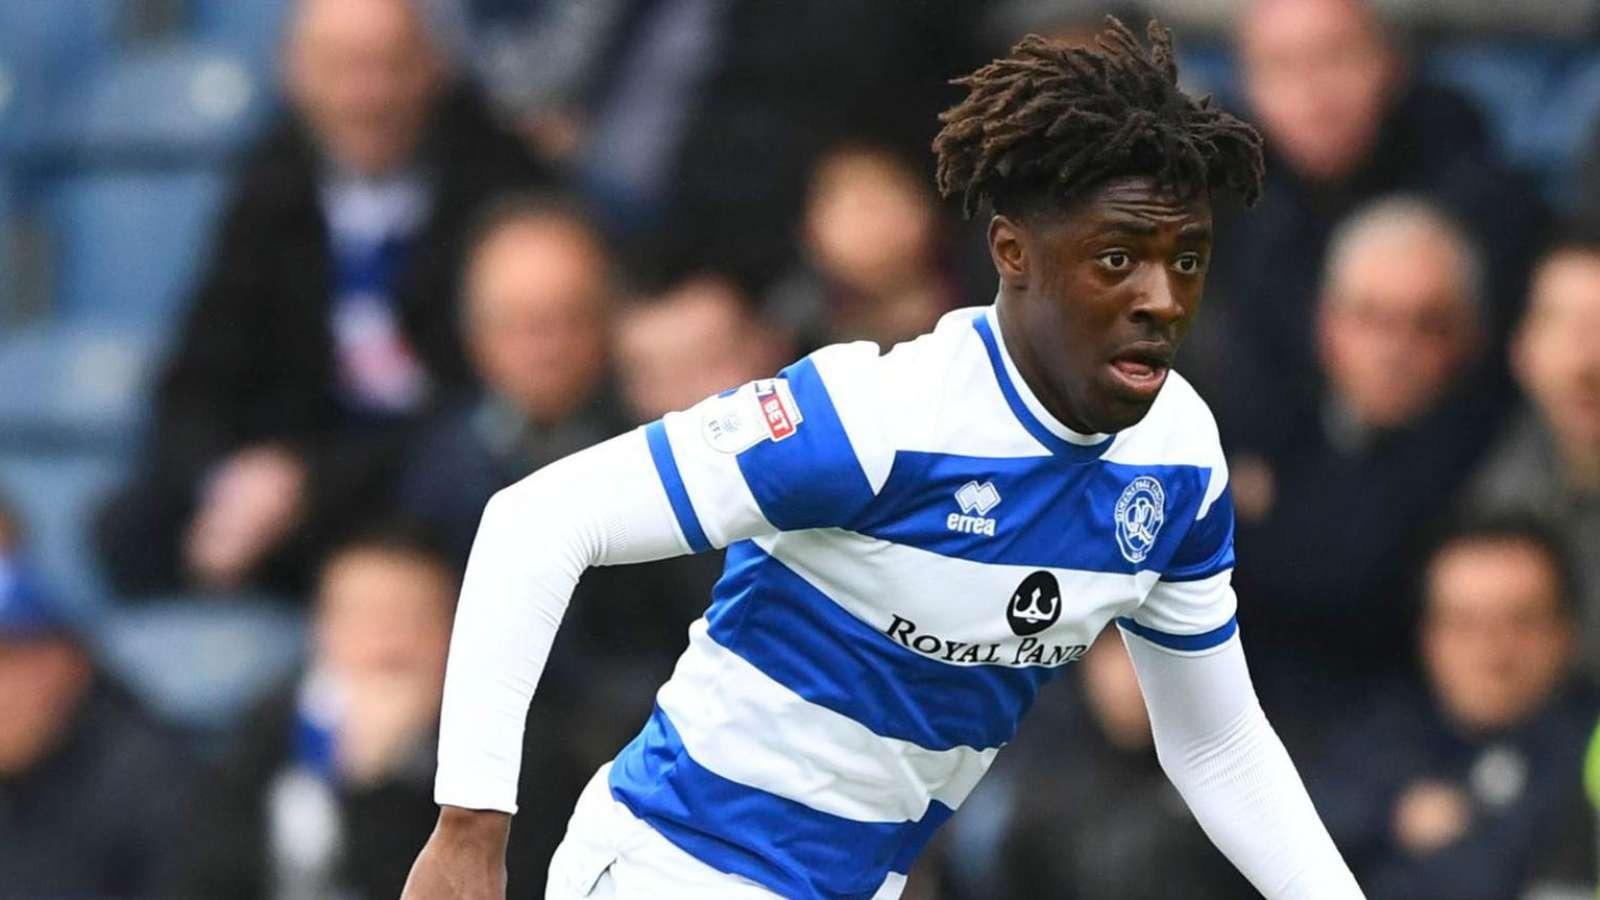 Crystal Palace Set To Sign Eze For £19.5m